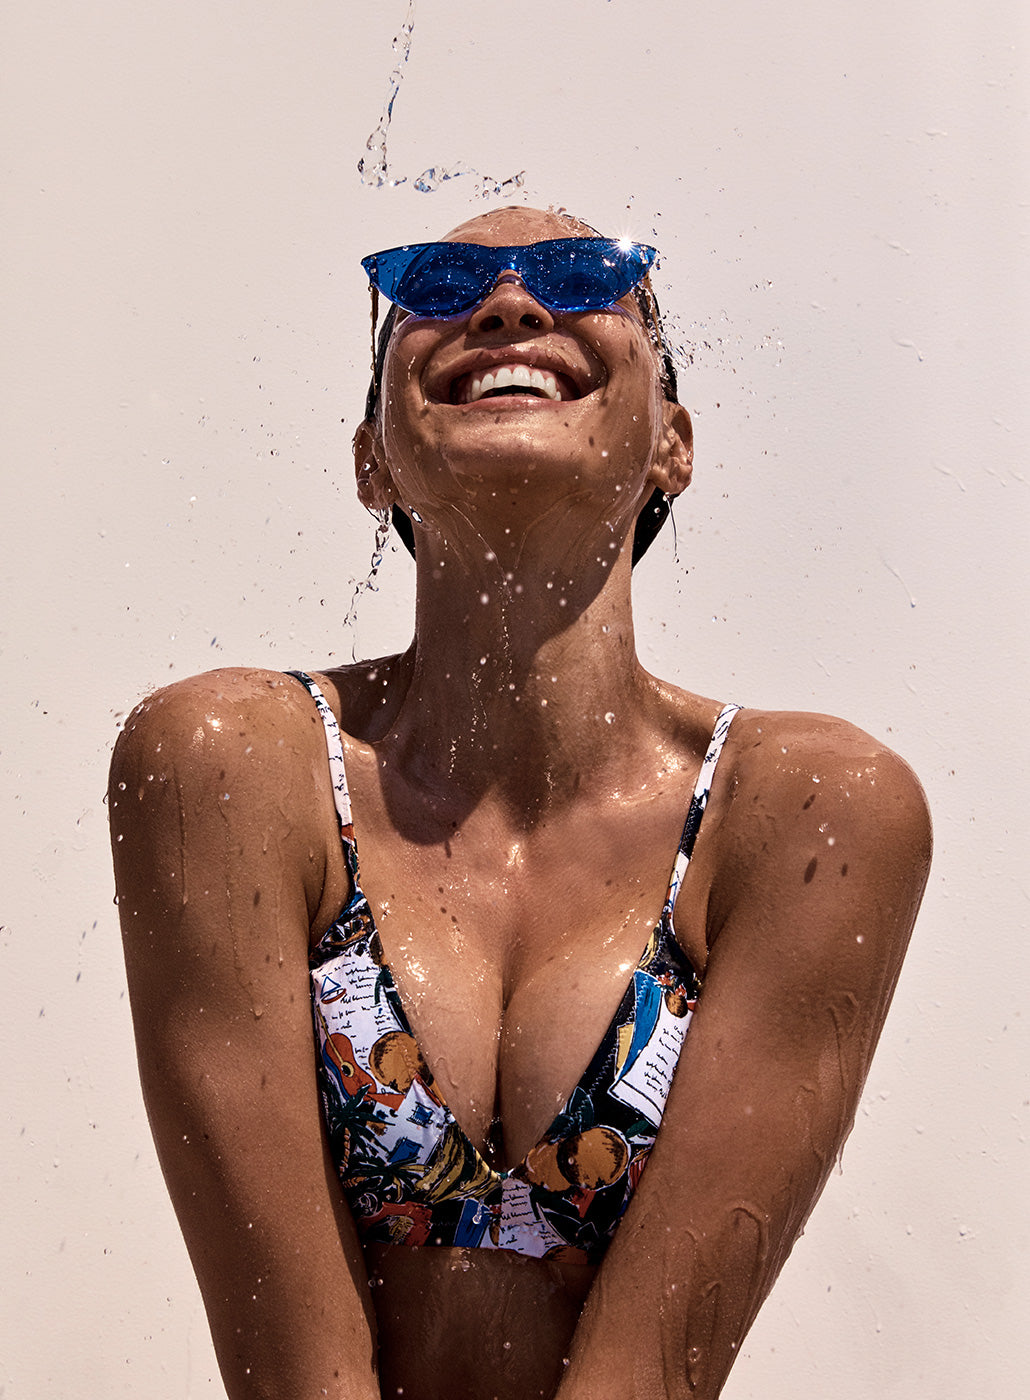 ScanlanTheodore_Summer19_Campaign_Swim_Image9